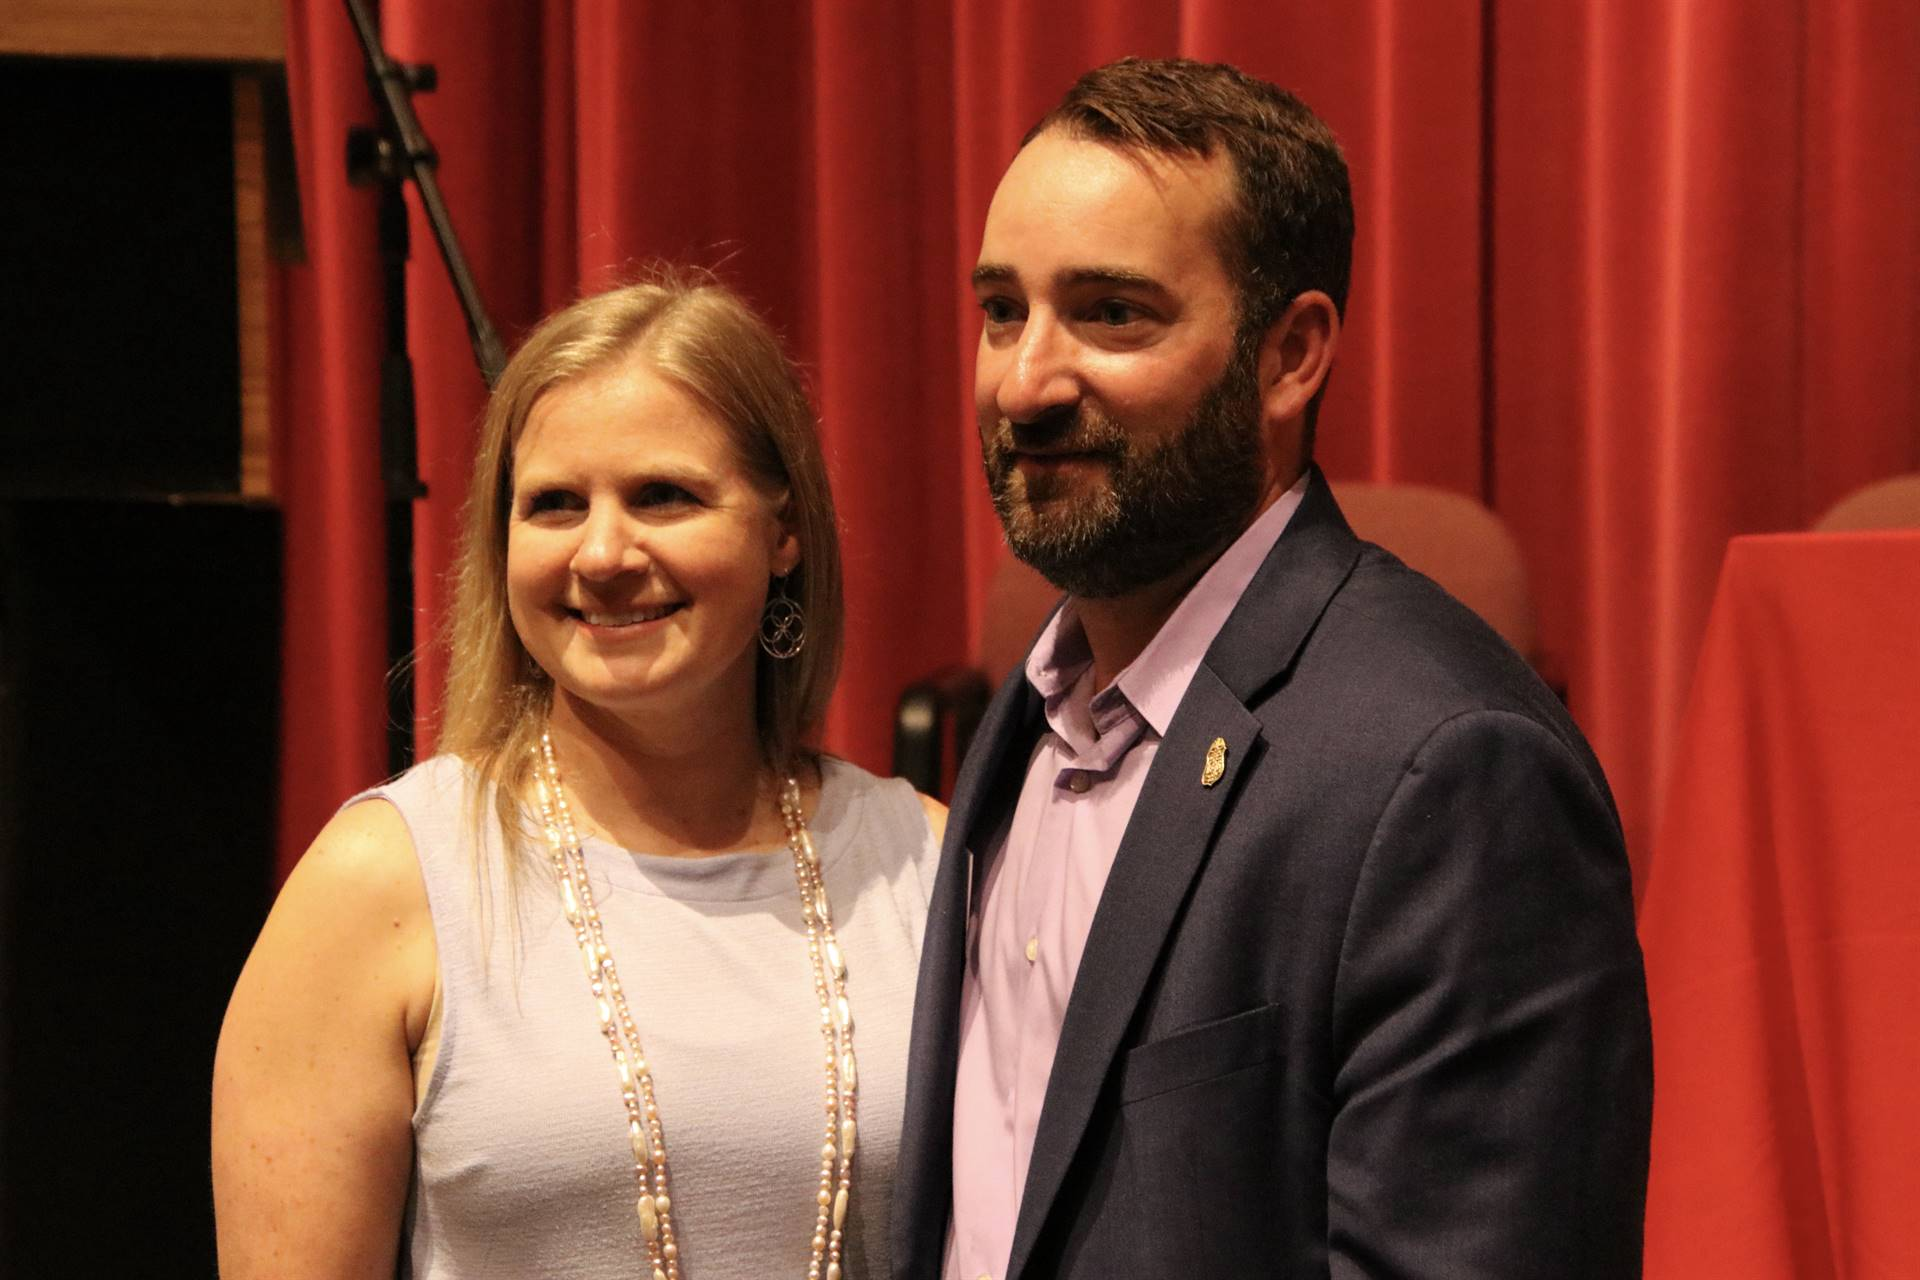 Hall of Distinction Honoree and wife